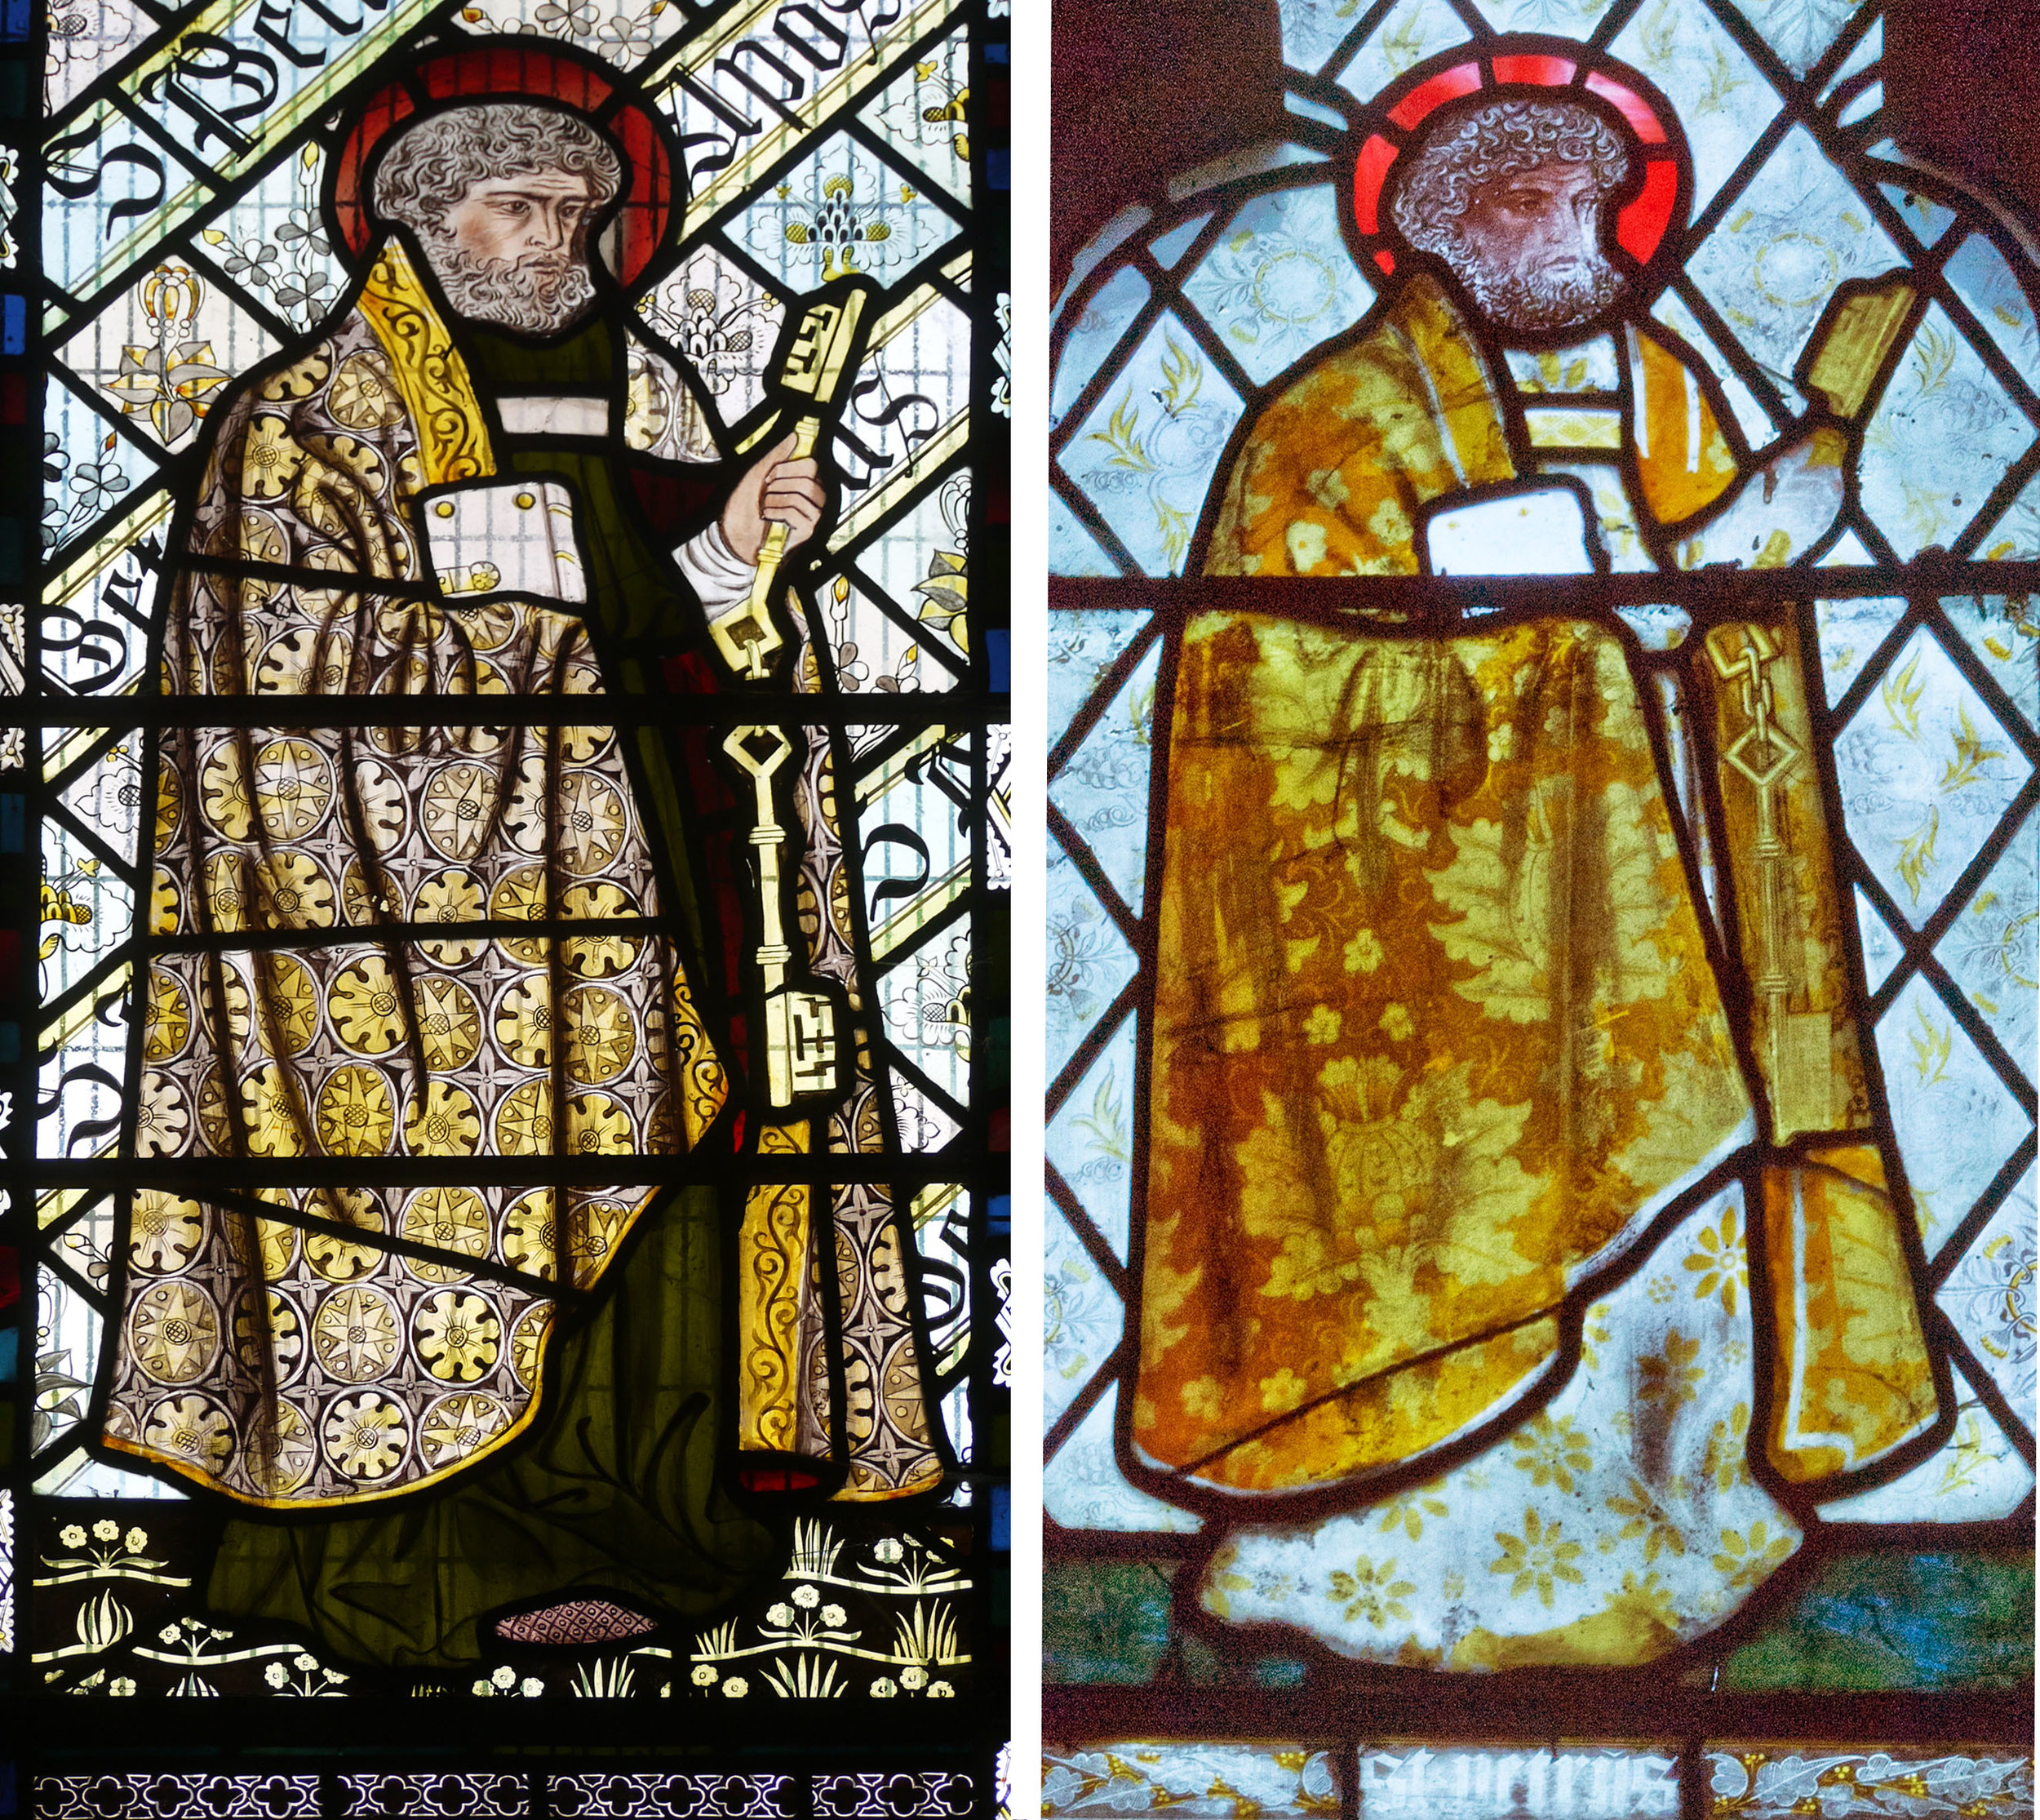 St. Peter from St. Nicholas Beaudesert (left), from St. Martin's Low Marple (right)